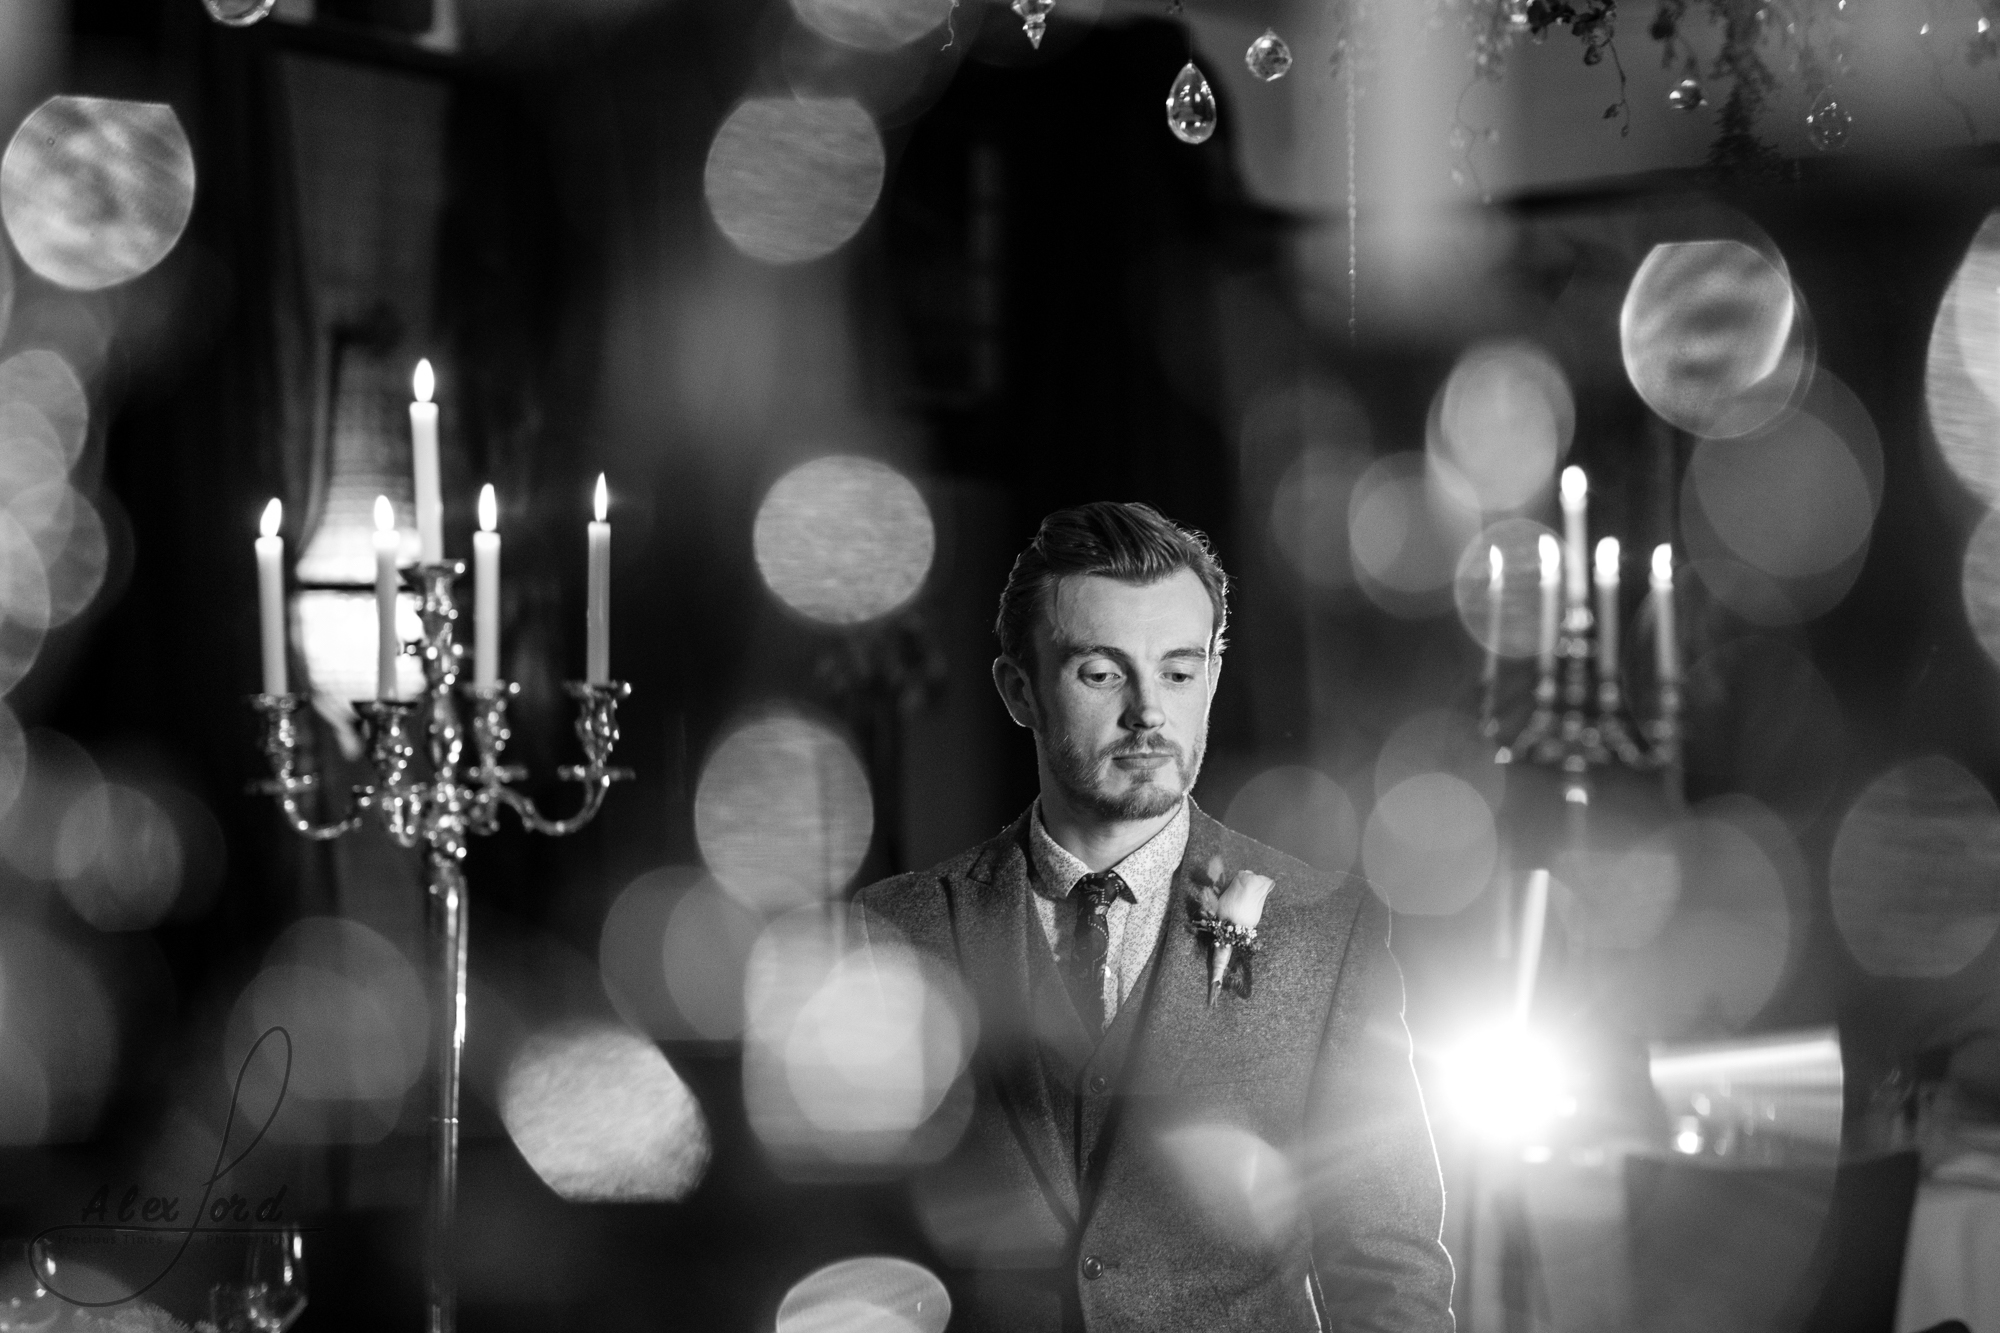 a black and white image of the groom inside the wedding venue lit up with candles